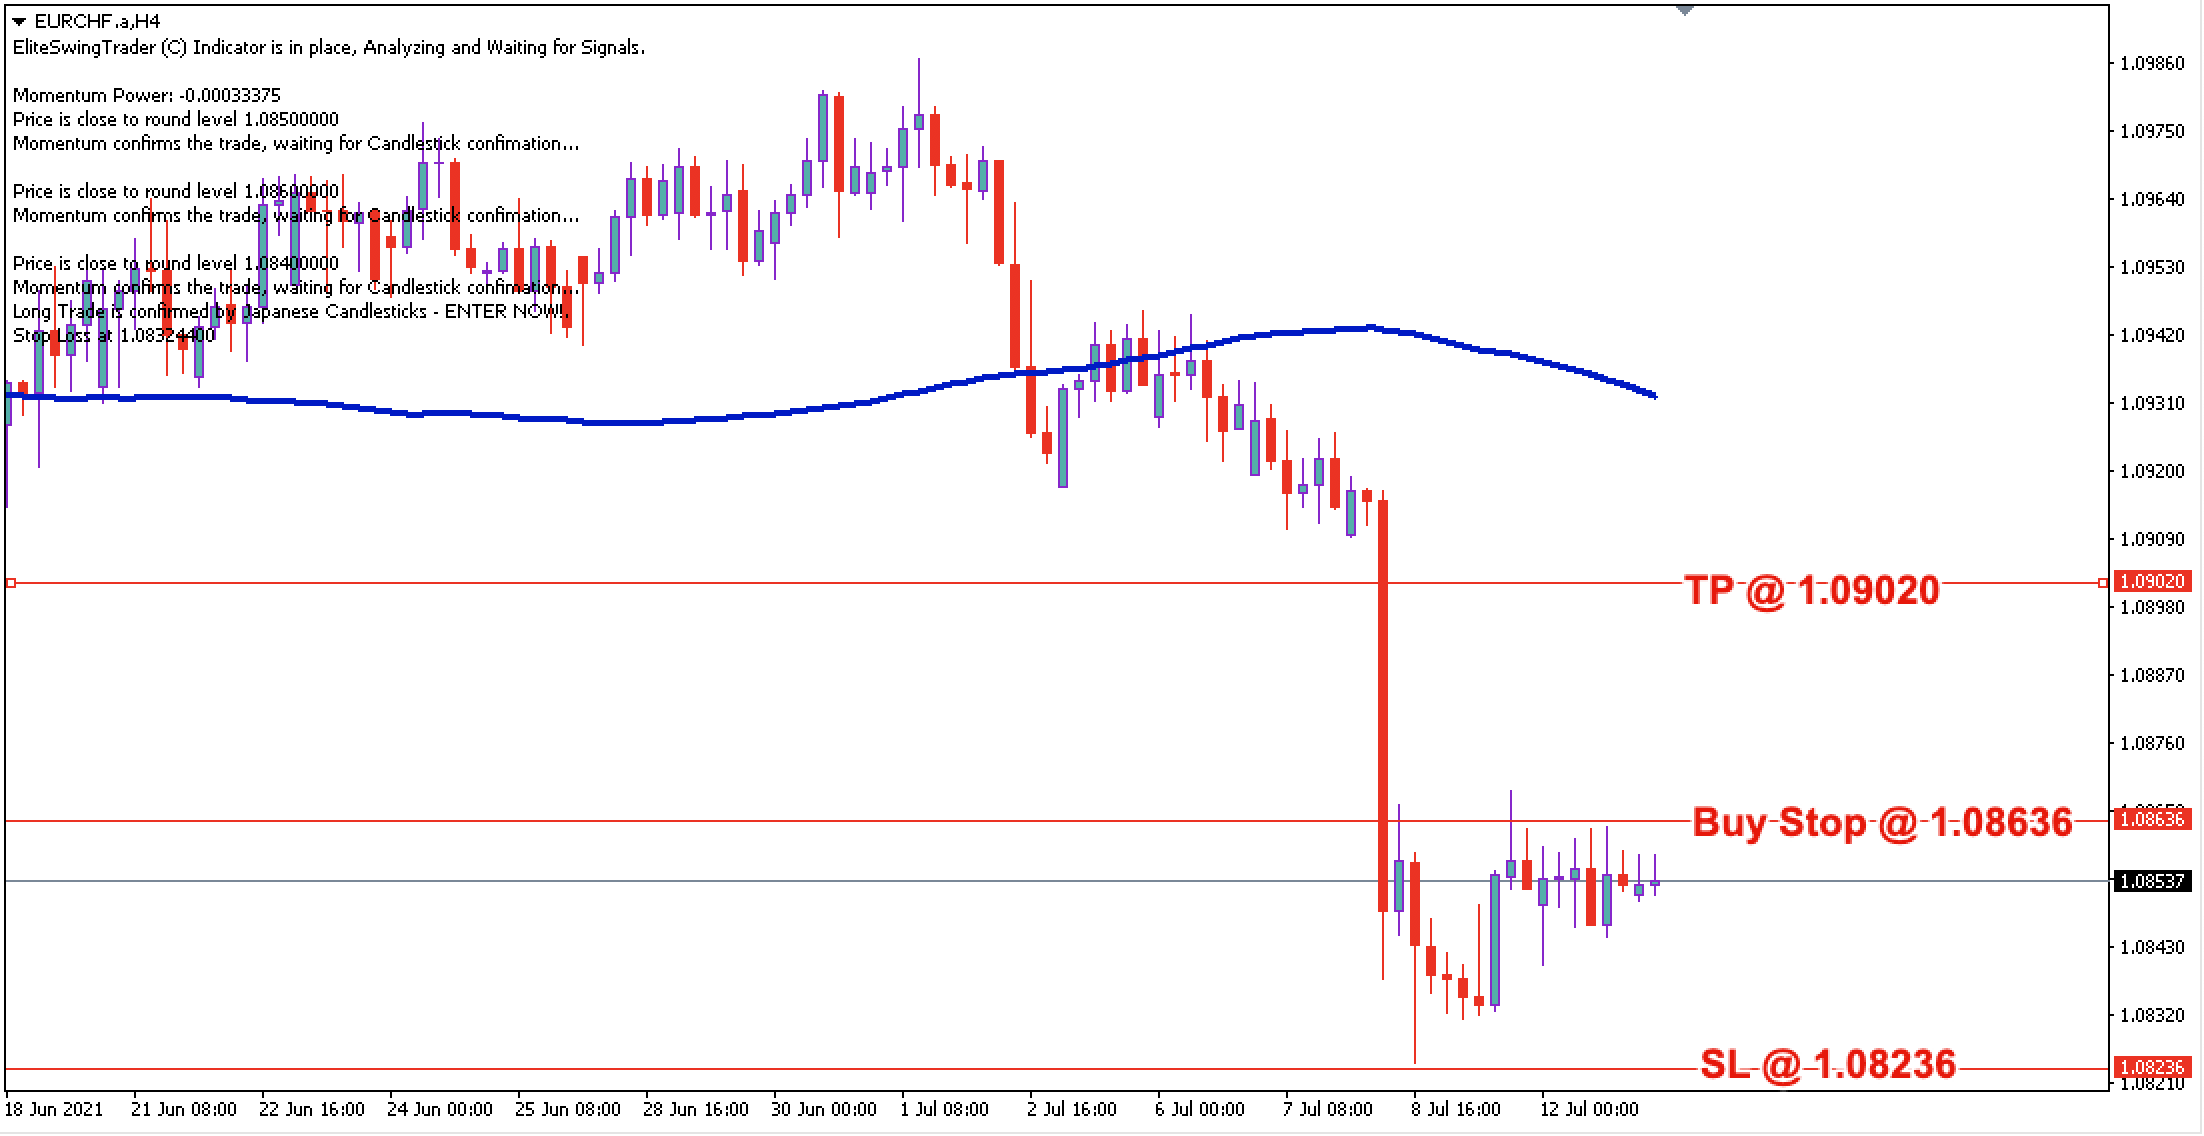 EUR/CHF Daily Price Forecast – 13th July 2021